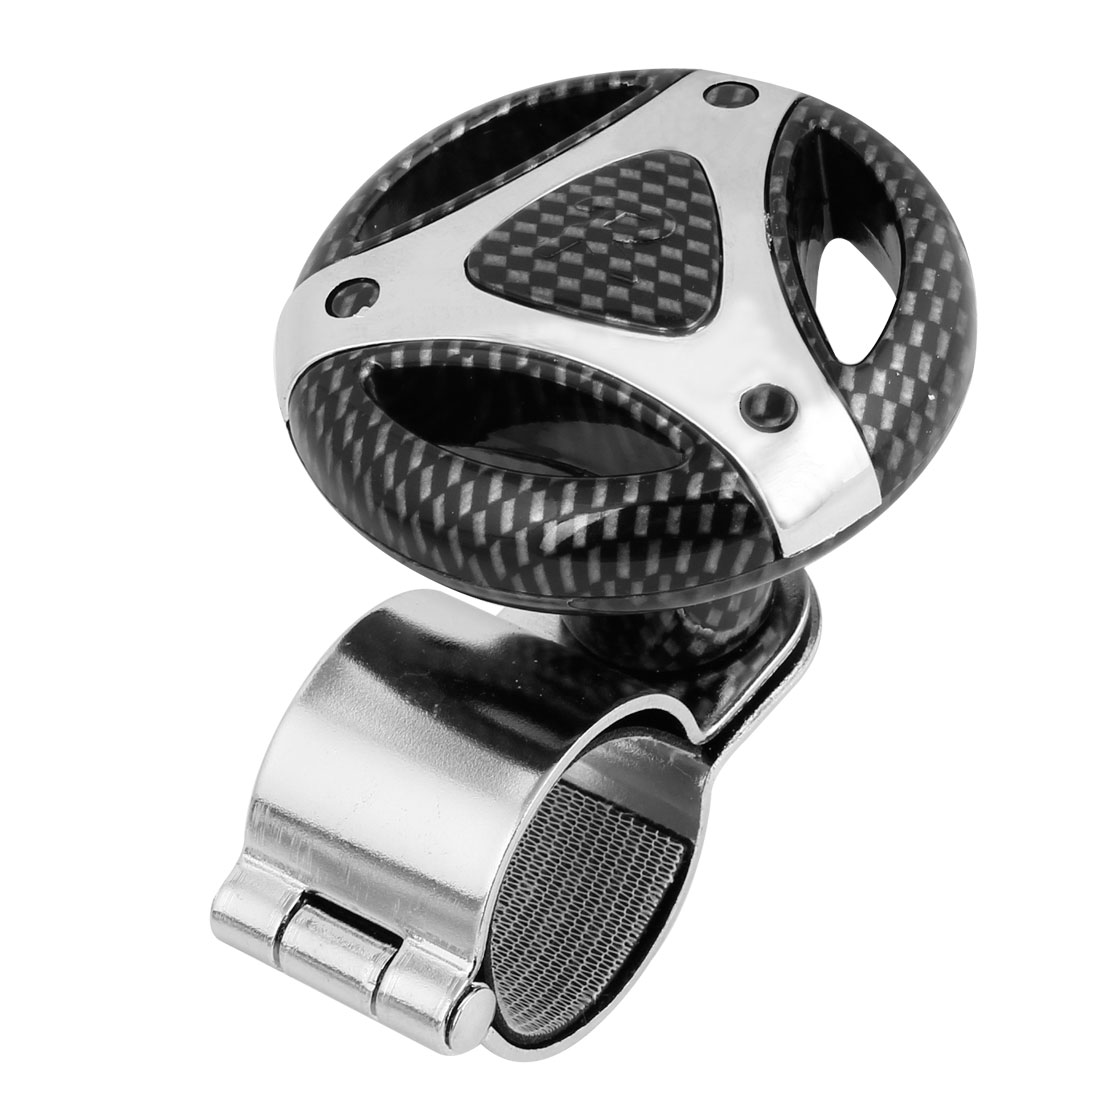 Black Carbon Fiber Pattern Steering Wheel Spinner Knob Power Handle for Car